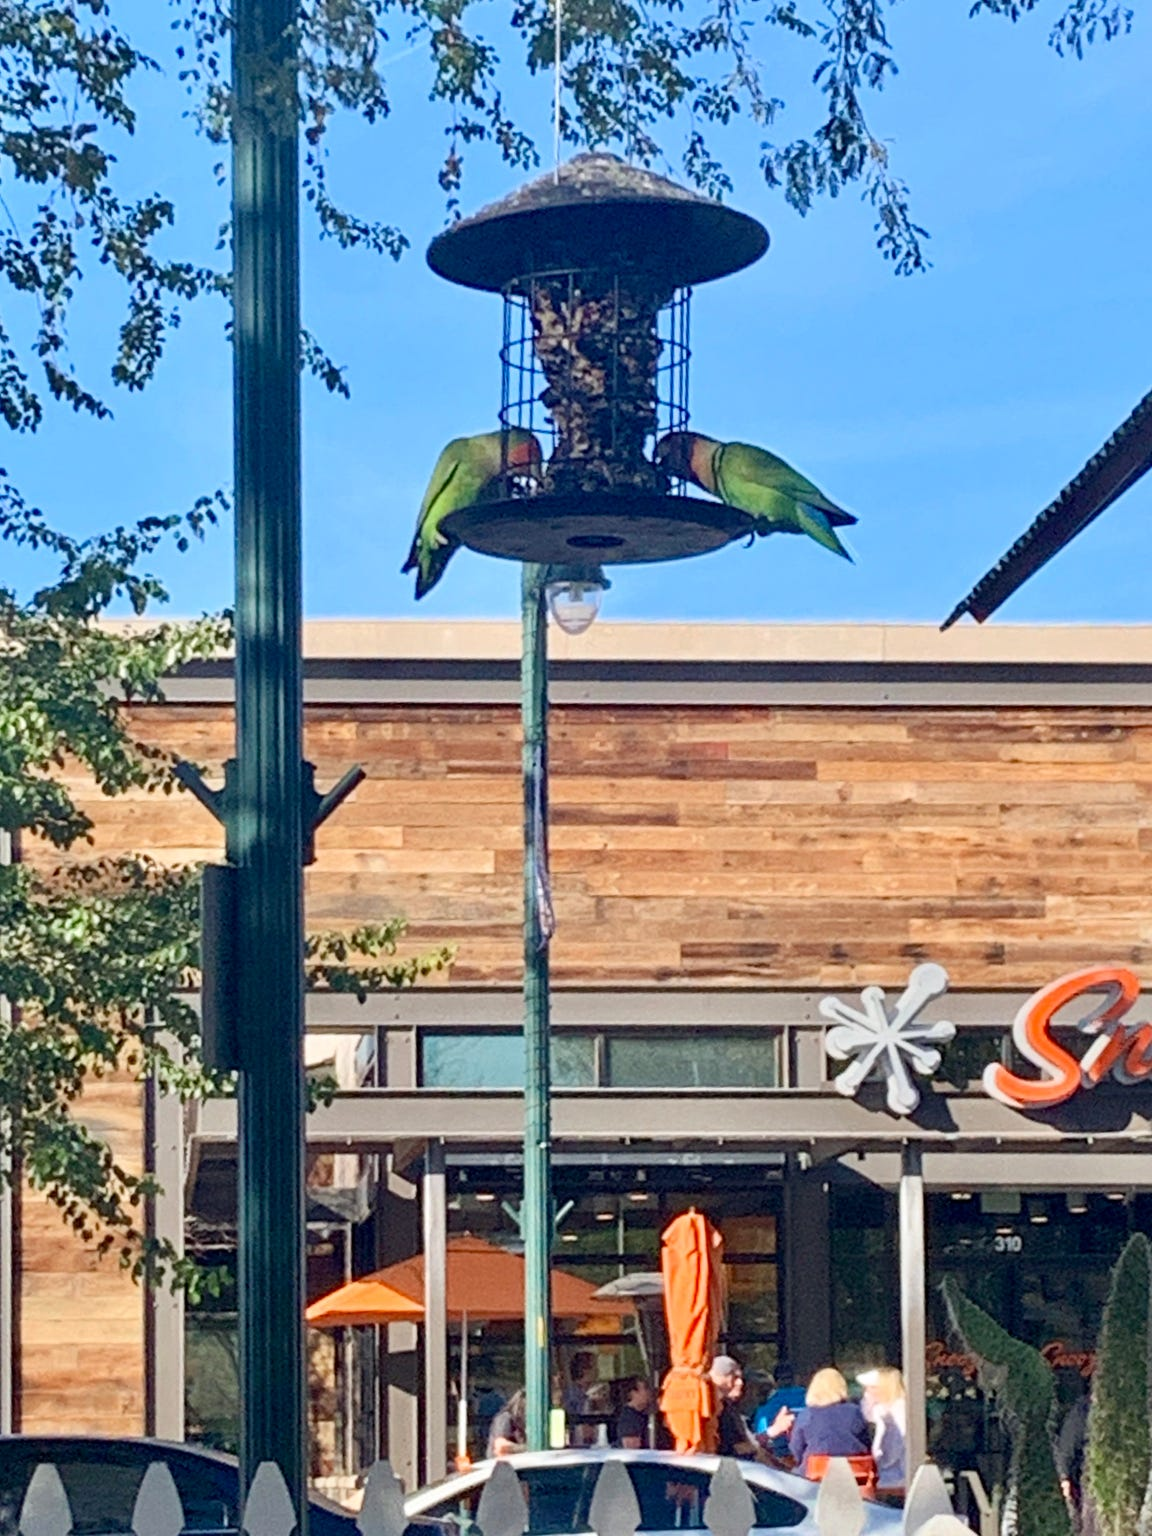 Rosy-faced lovebirds eating at Bergies Coffee Roast House in downtown Gilbert, Arizona.